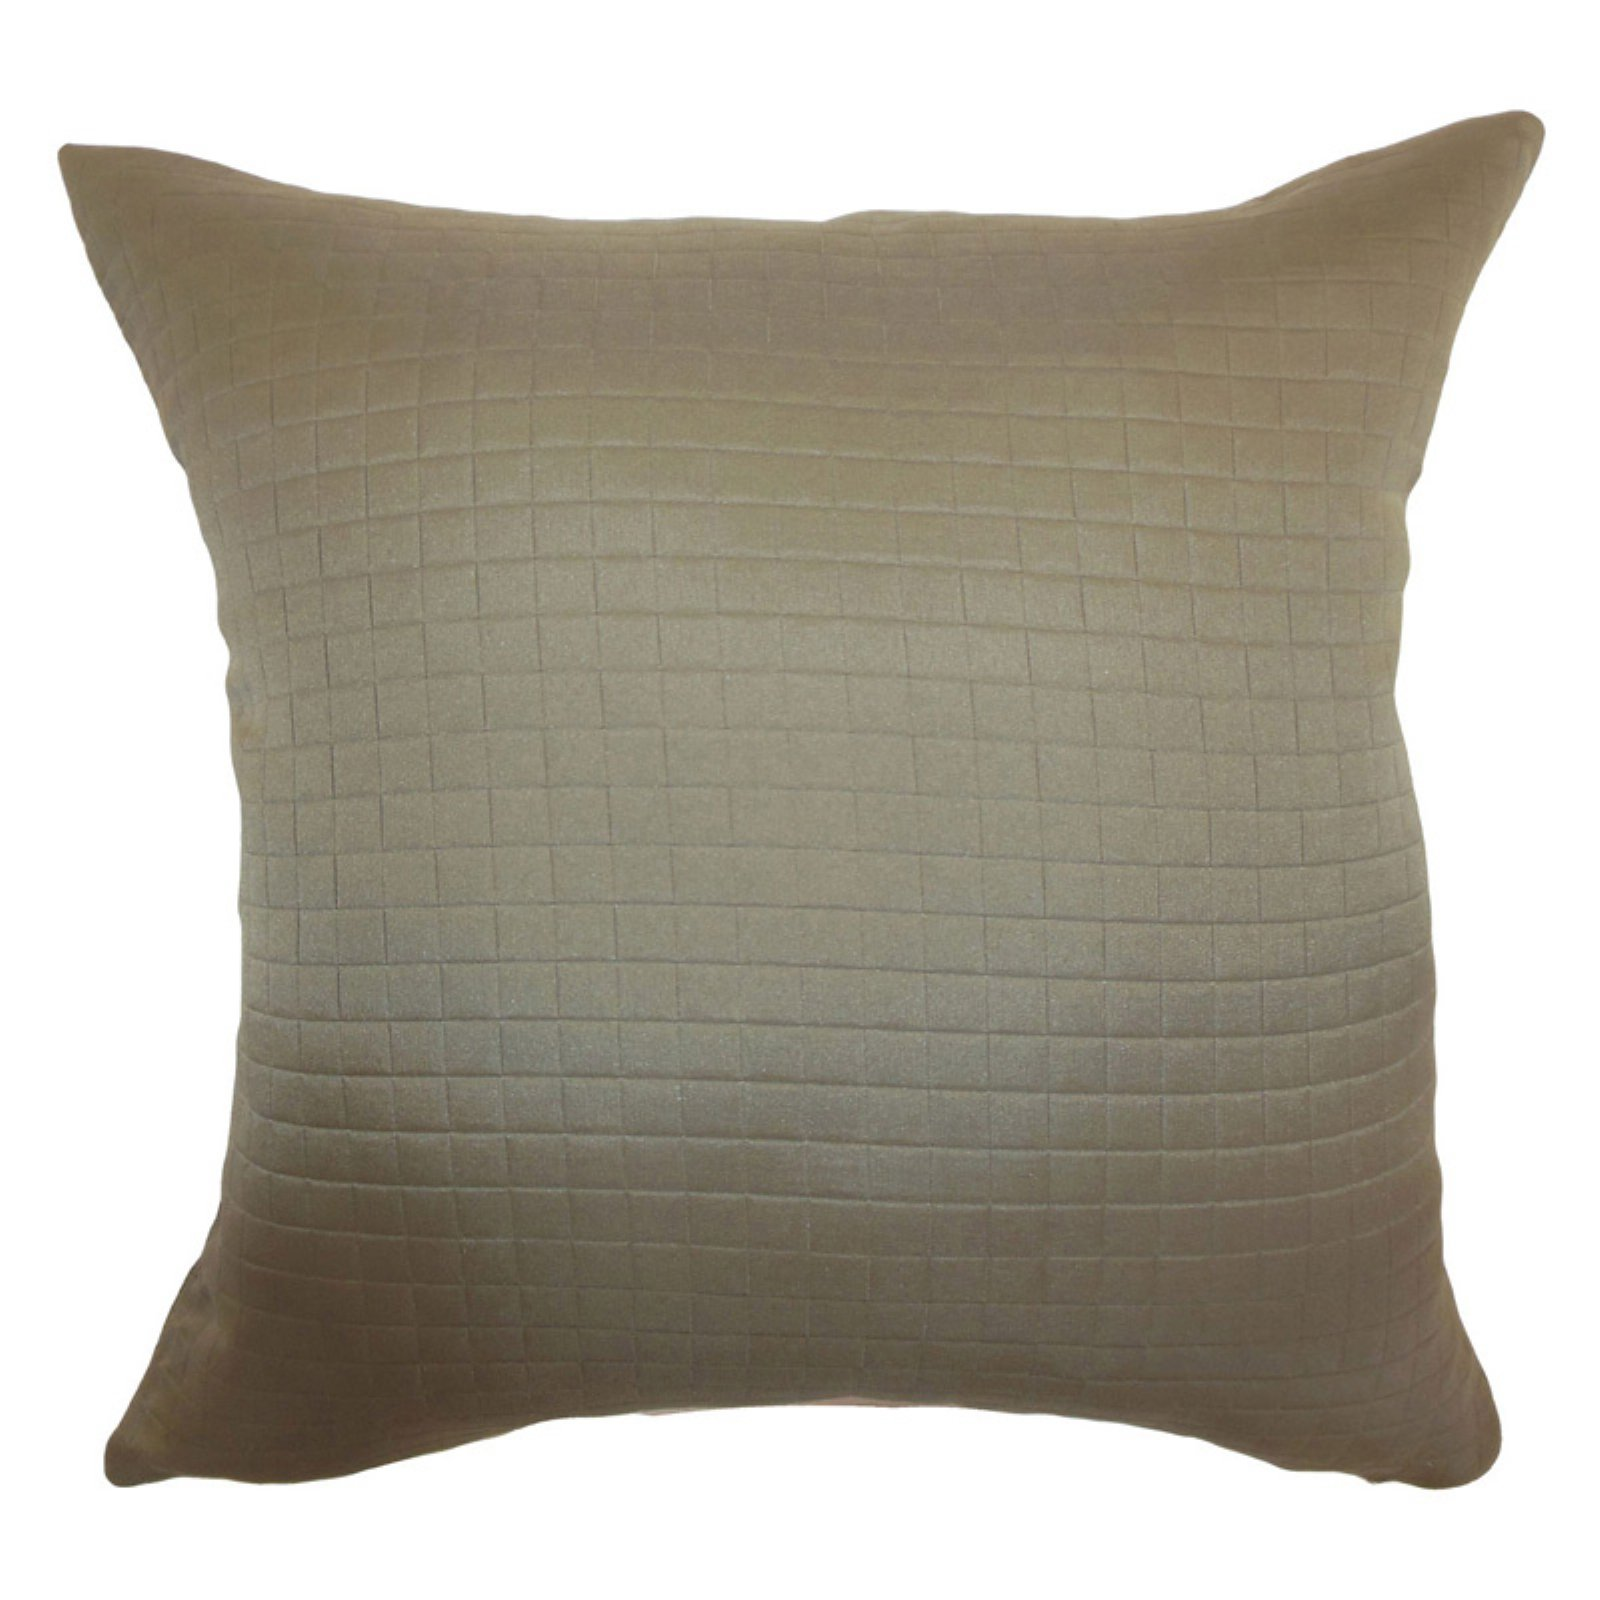 The Pillow Collection Maertisa Quilted Pillow - Espresso